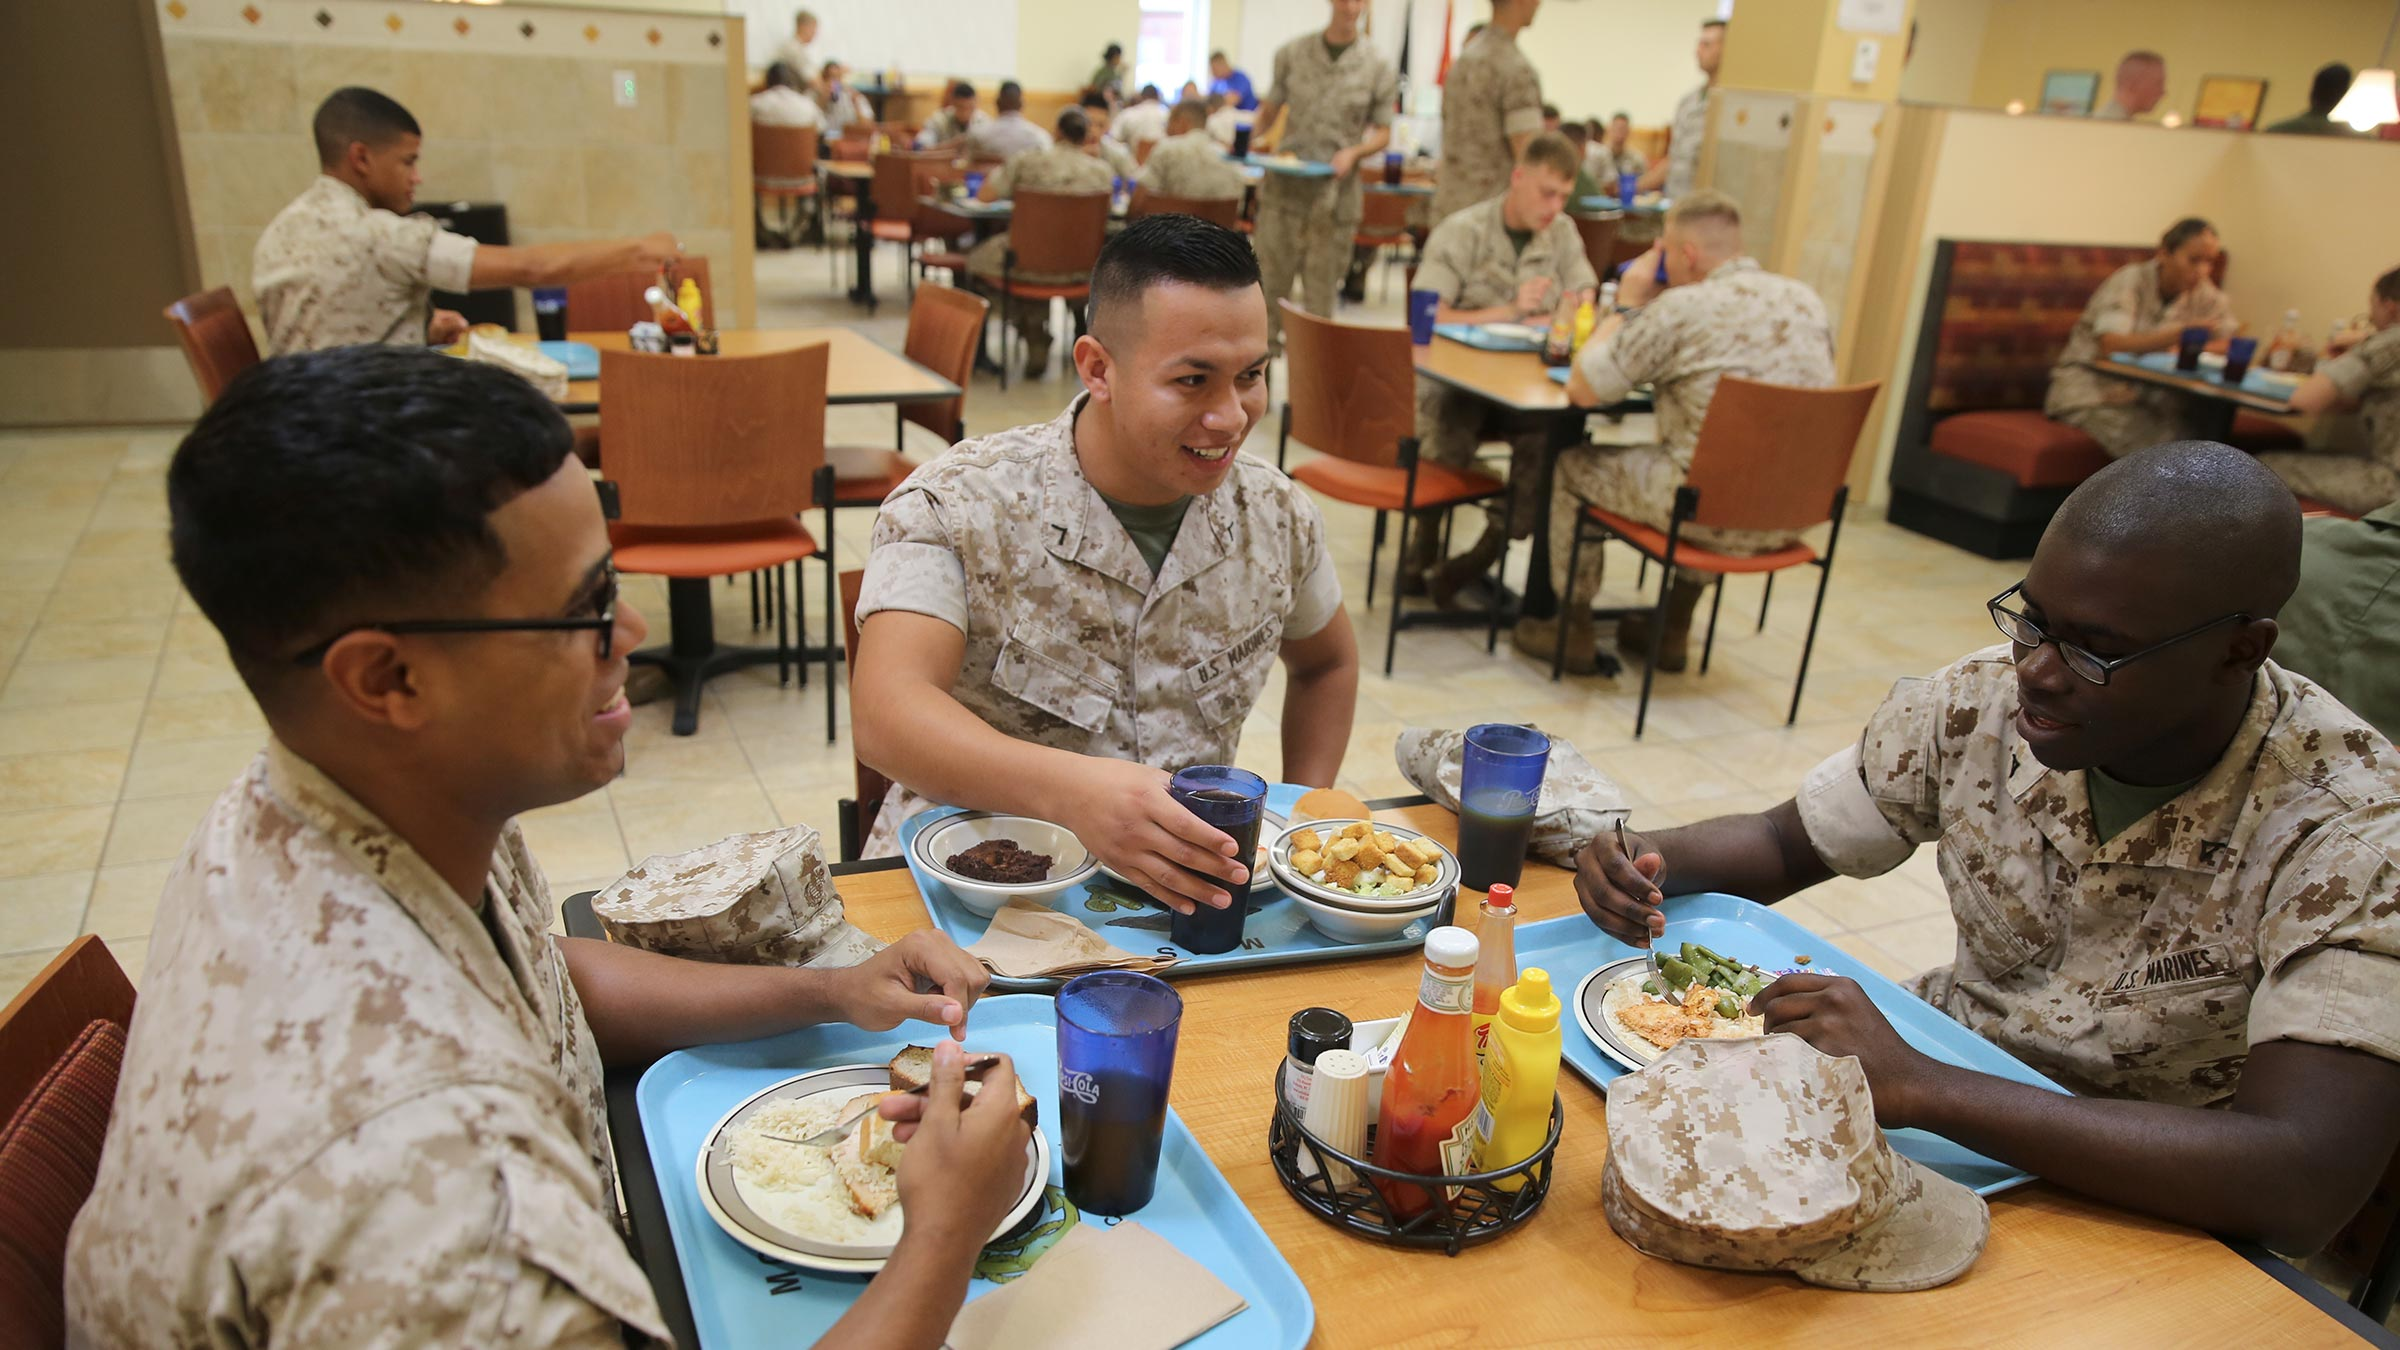 Newly-recruited Marines eat a meal at a mess hall table.